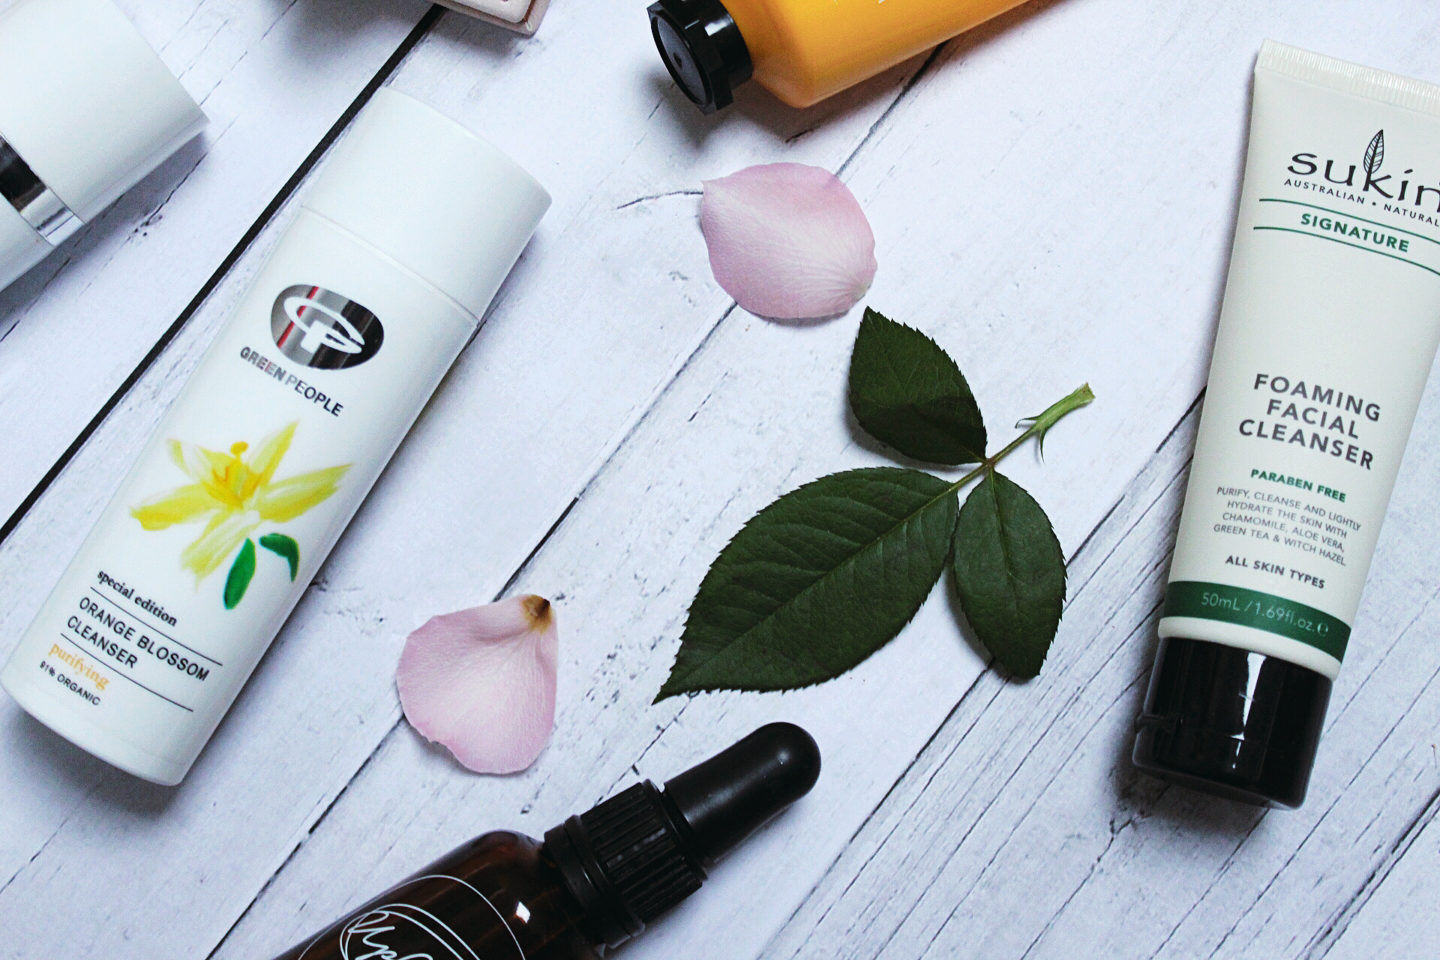 Green People, Sukin, Upcircle, Dr Botanicals - vegan skincare